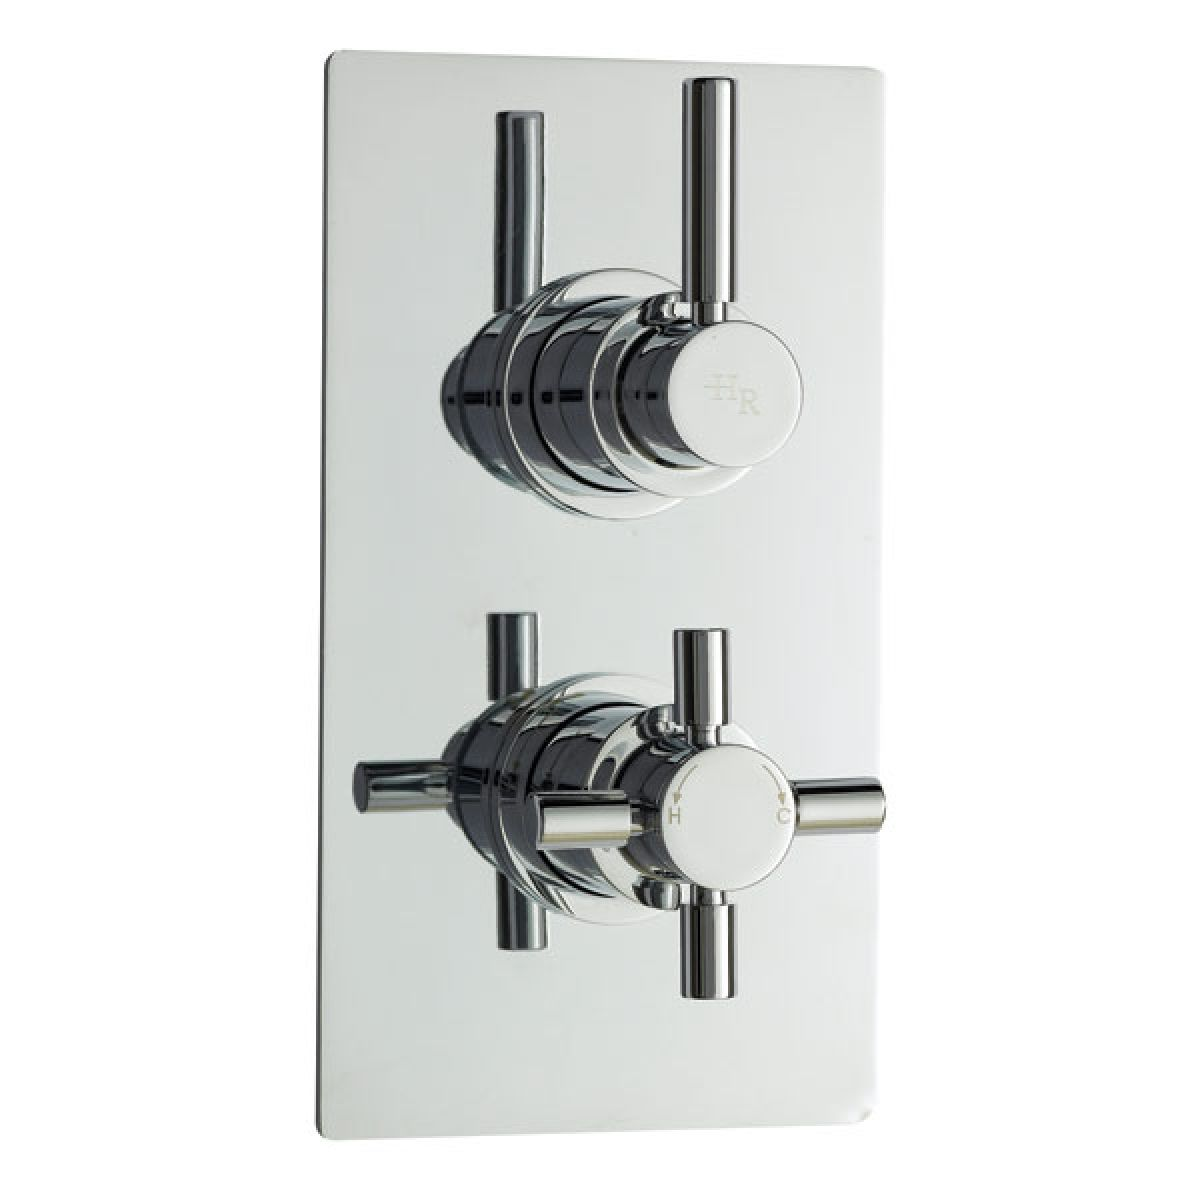 Hudson Reed Pura Twin Concealed Thermostatic Shower Valve